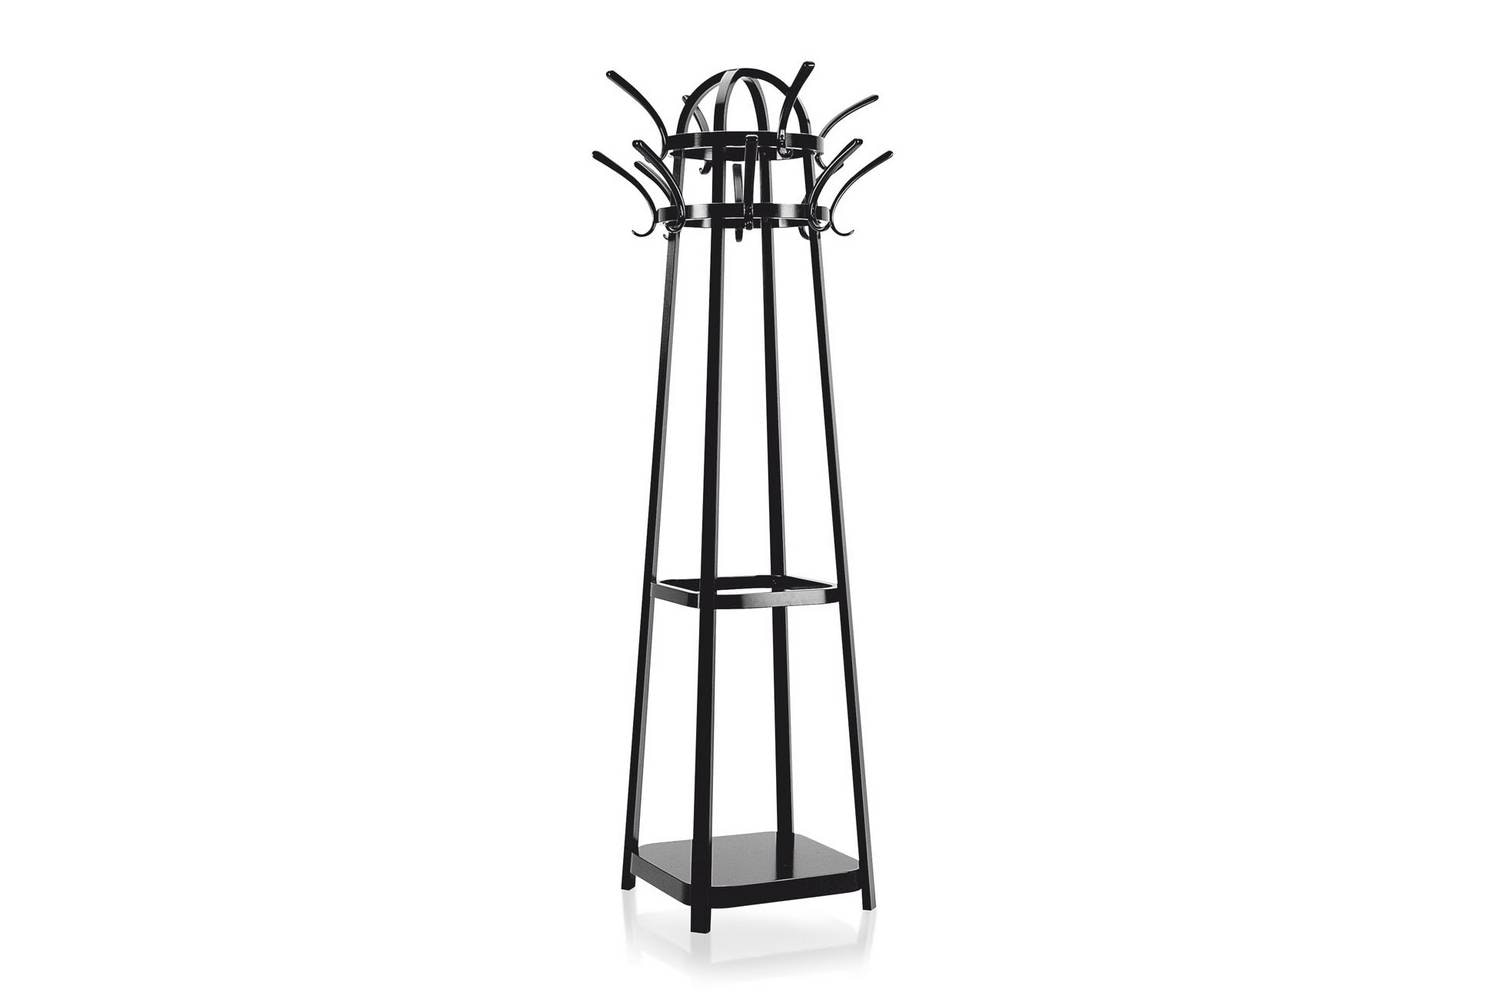 Kolo Moser Coat Stand by Koloman Moser for Wiener GTV Design